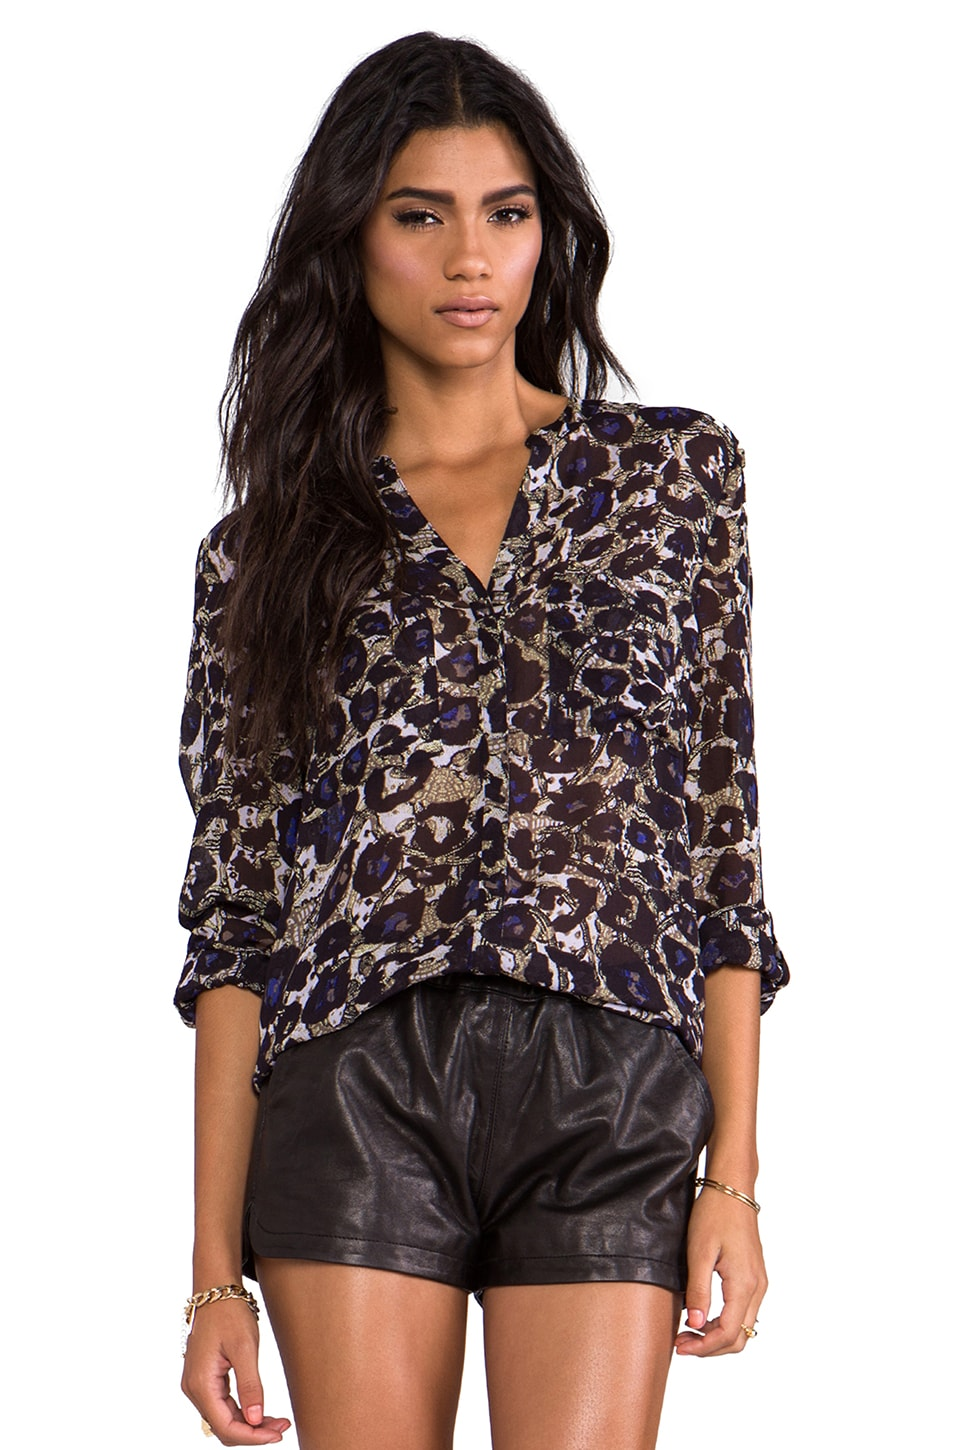 Sanctuary Cafe Top in Leopard Lace